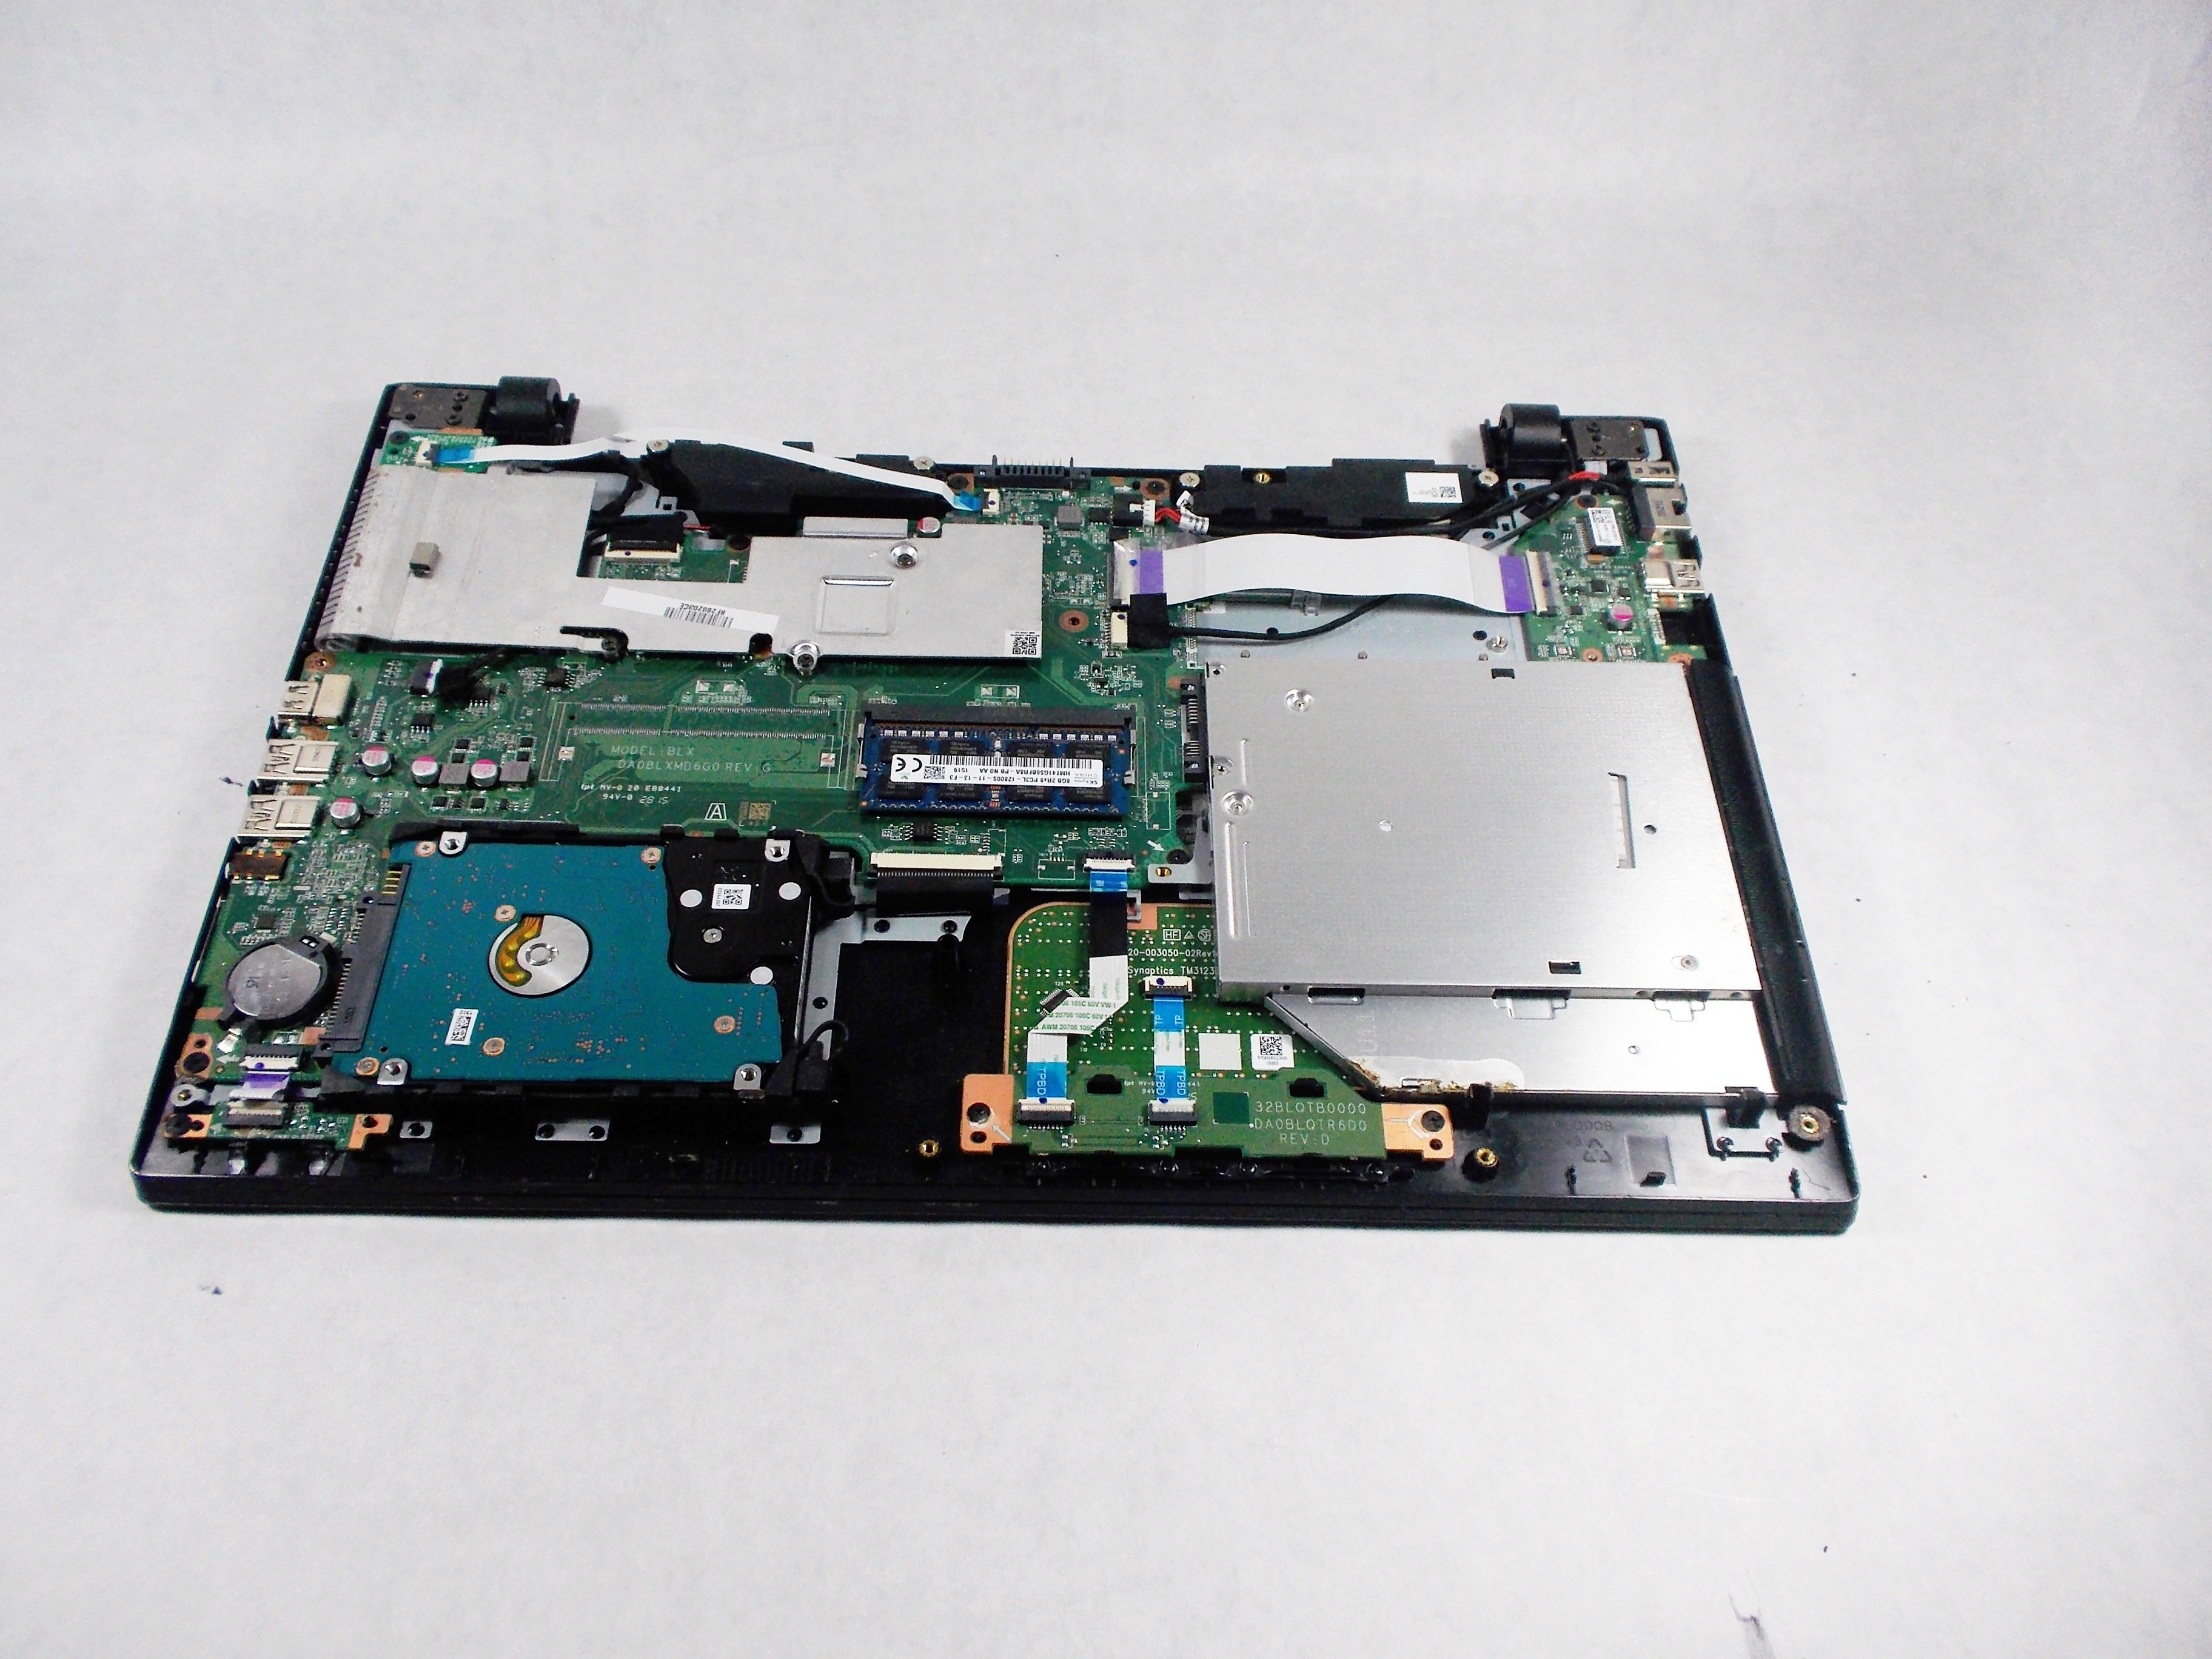 Toshiba Satellite C55-C5268 Hard Drive Replacement - iFixit